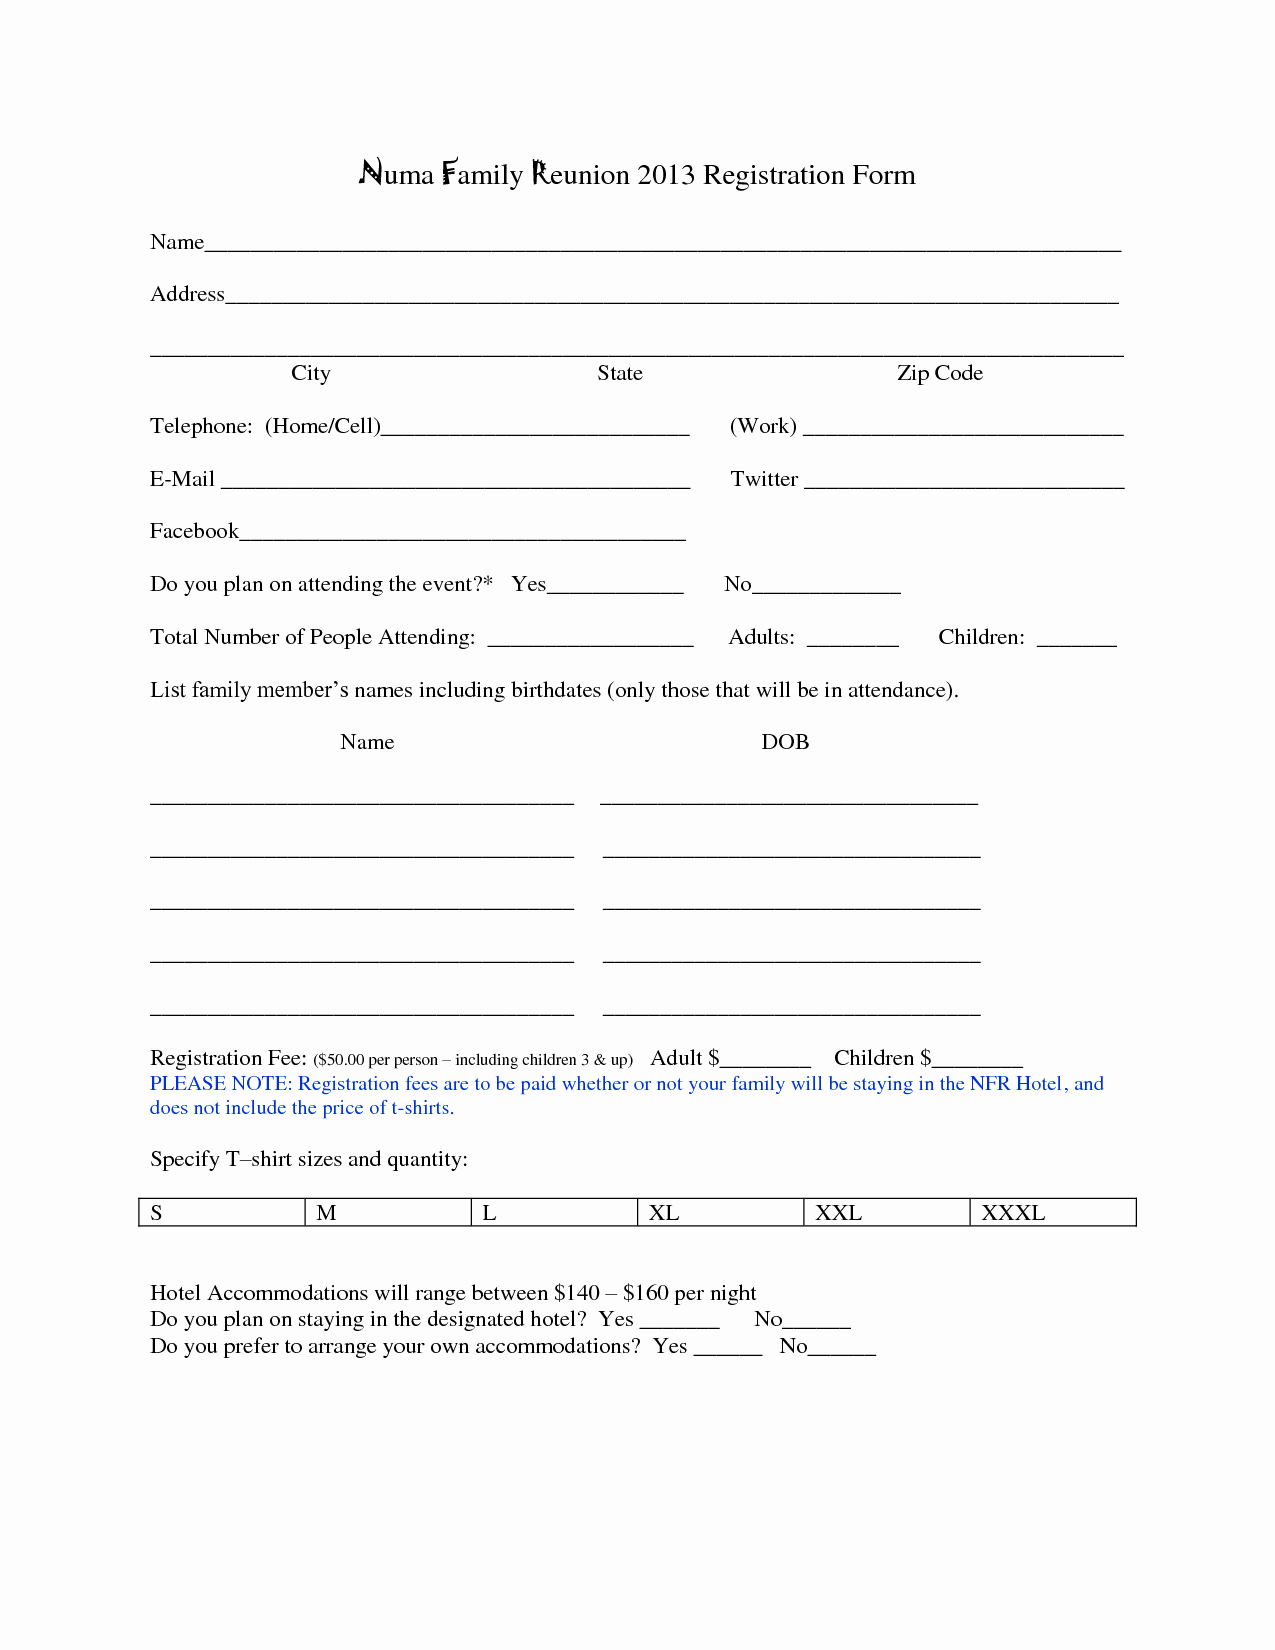 Blank Registration form Template Best Of Family Reunion Registration form Template